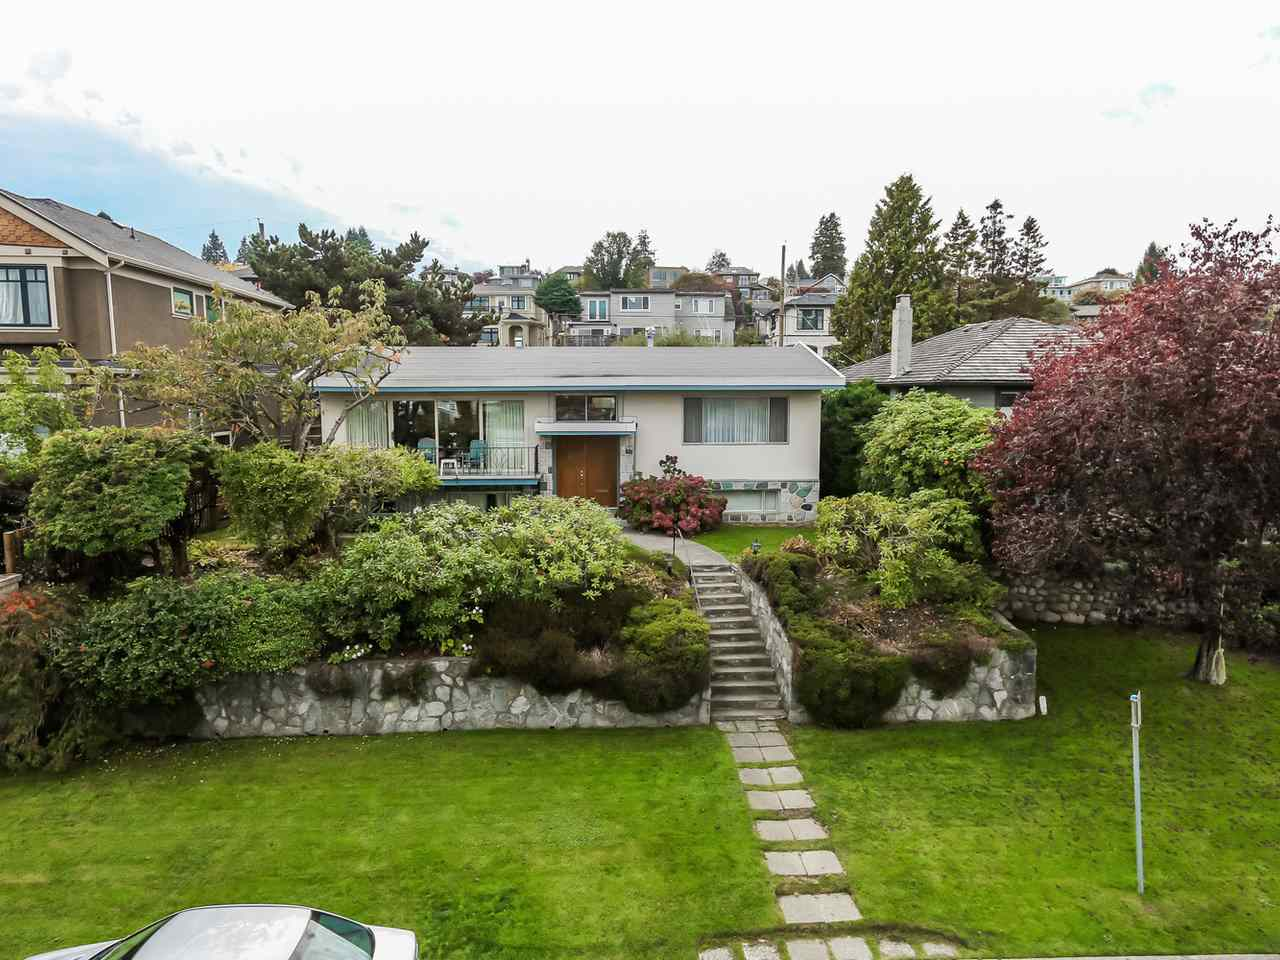 Main Photo: 4709 HAGGART STREET in Vancouver: Quilchena House for sale (Vancouver West)  : MLS® # R2006969